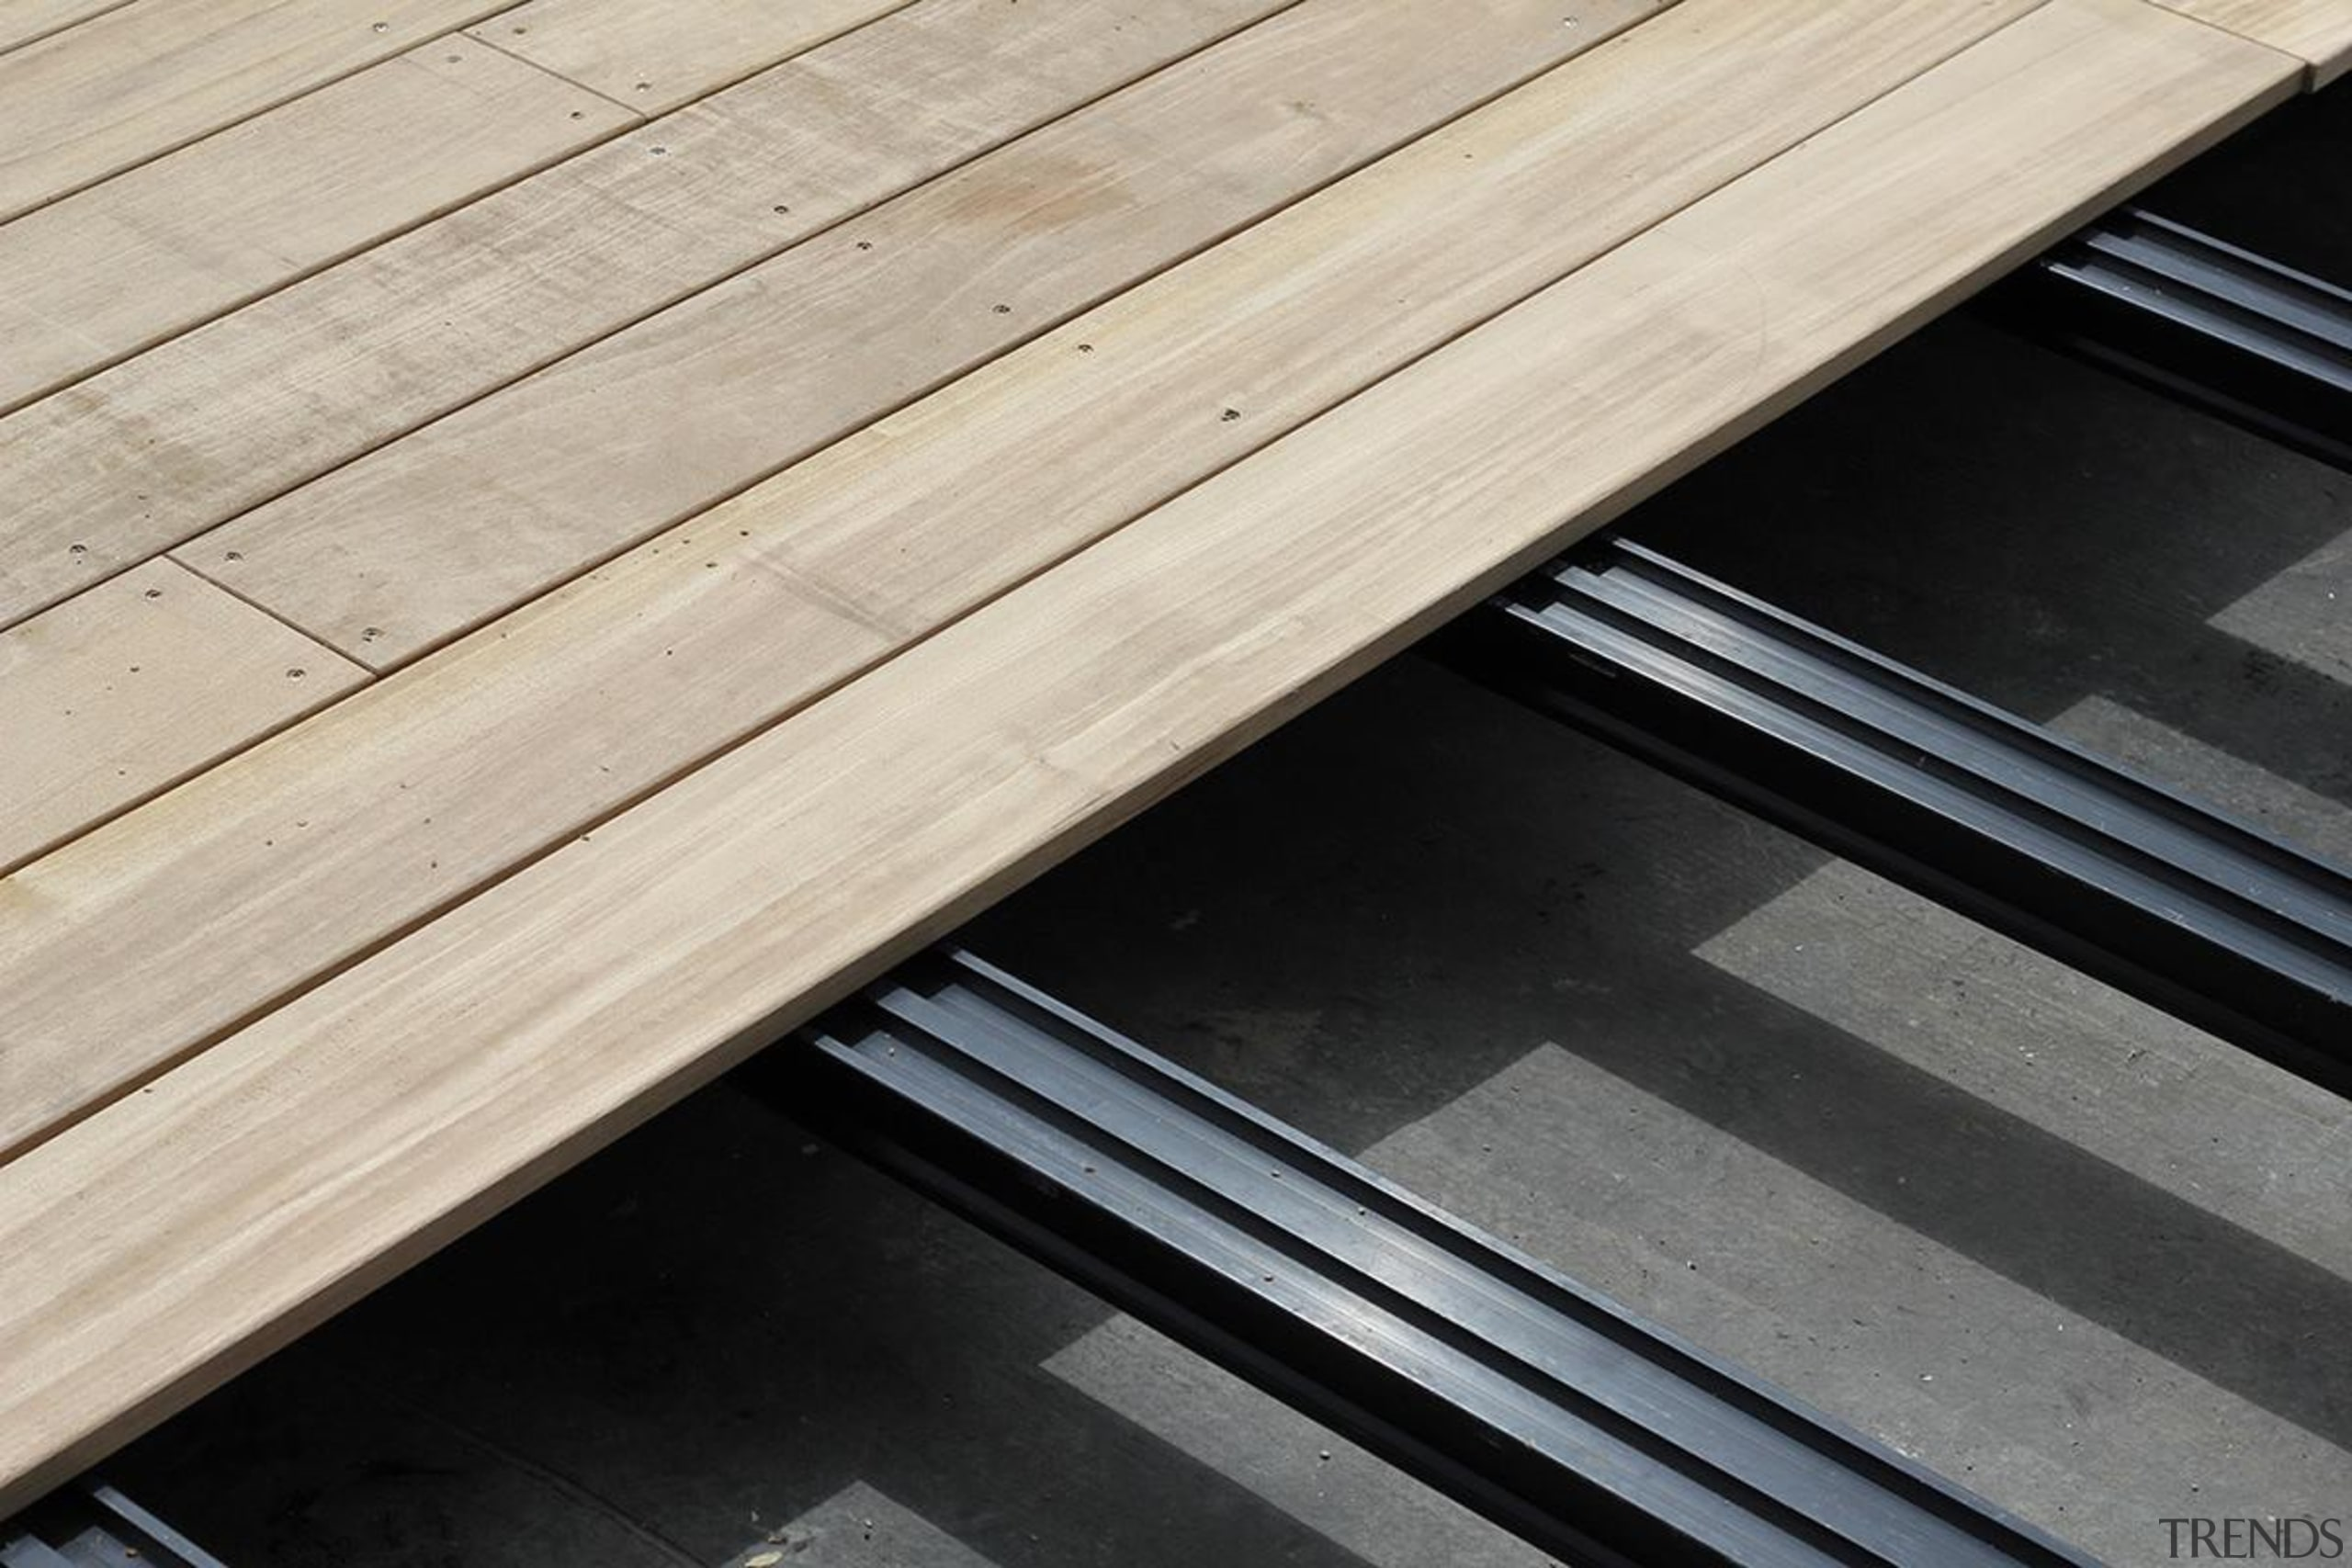 QWICKBUILD is the award-winning aluminium sub-frame system by angle, daylighting, floor, furniture, line, roof, steel, table, wood, wood stain, gray, black